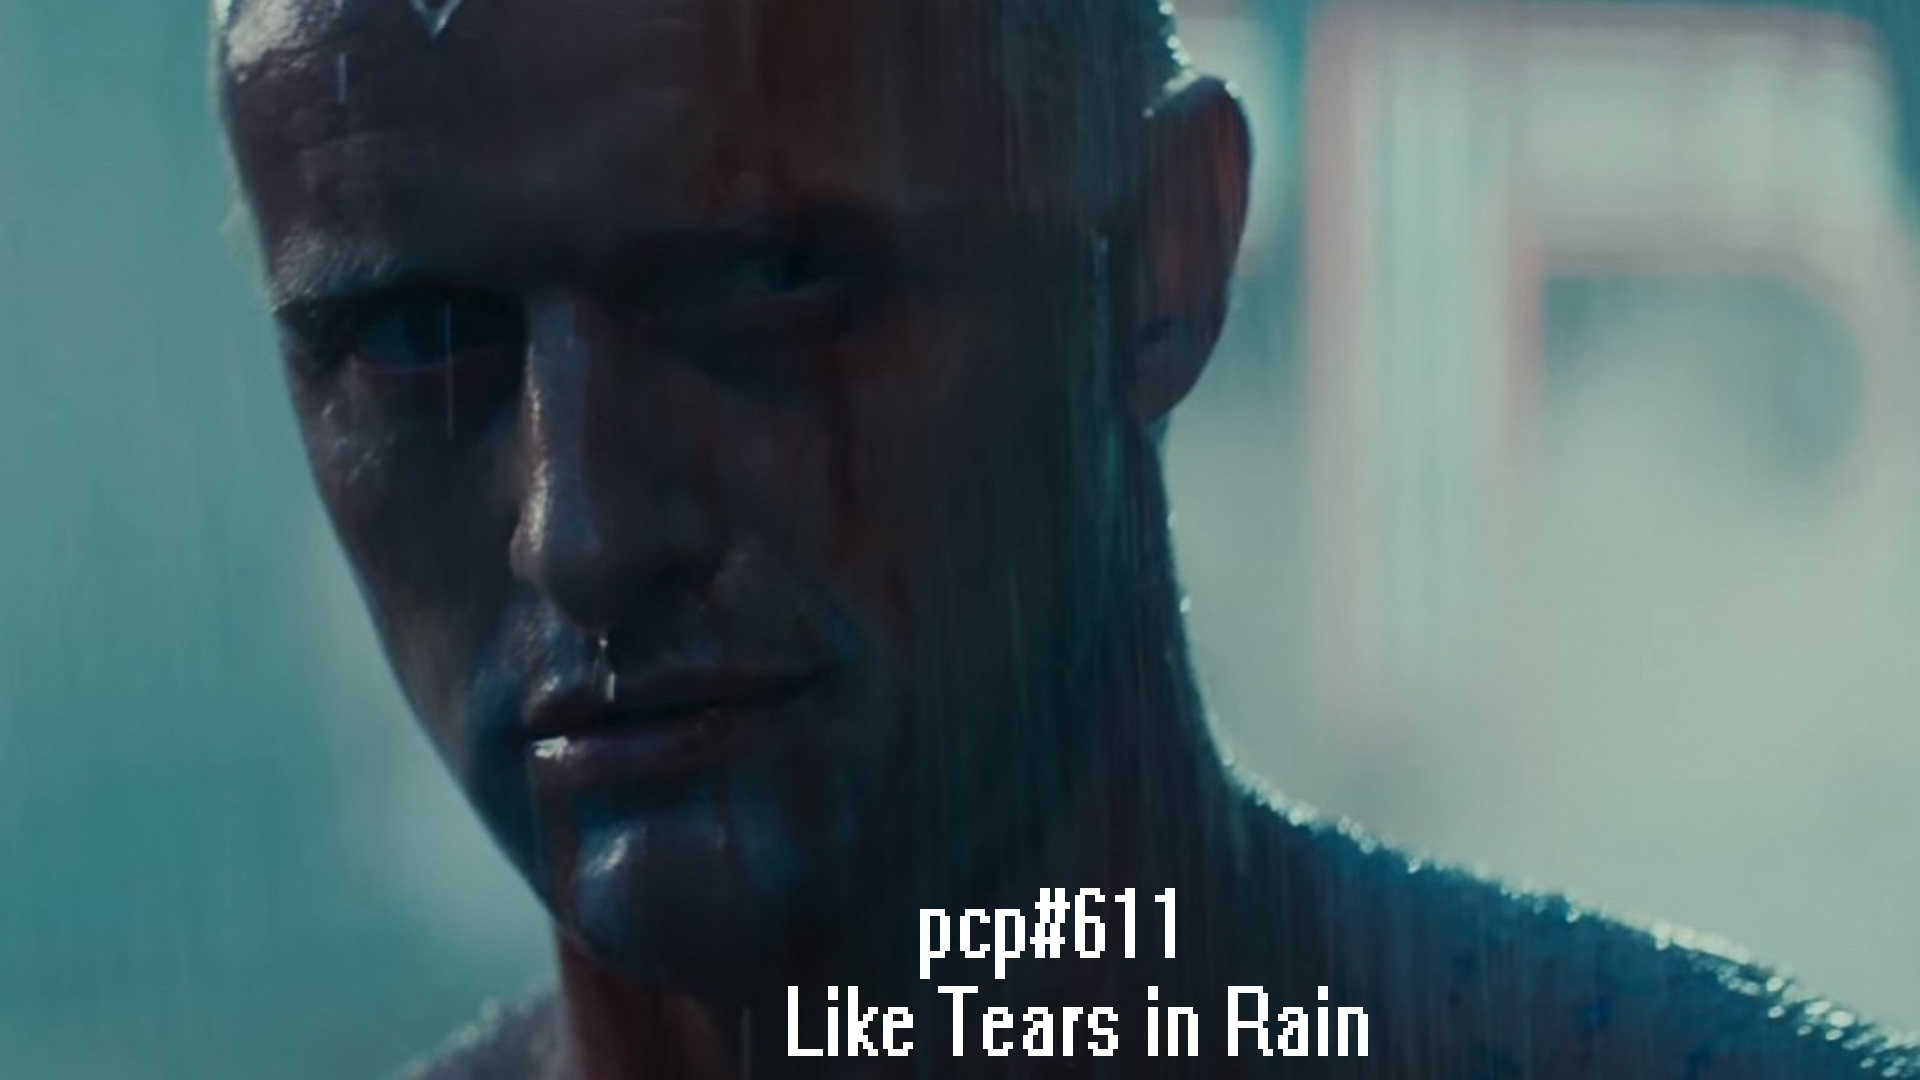 PCP#611... Like Tears in Rain...